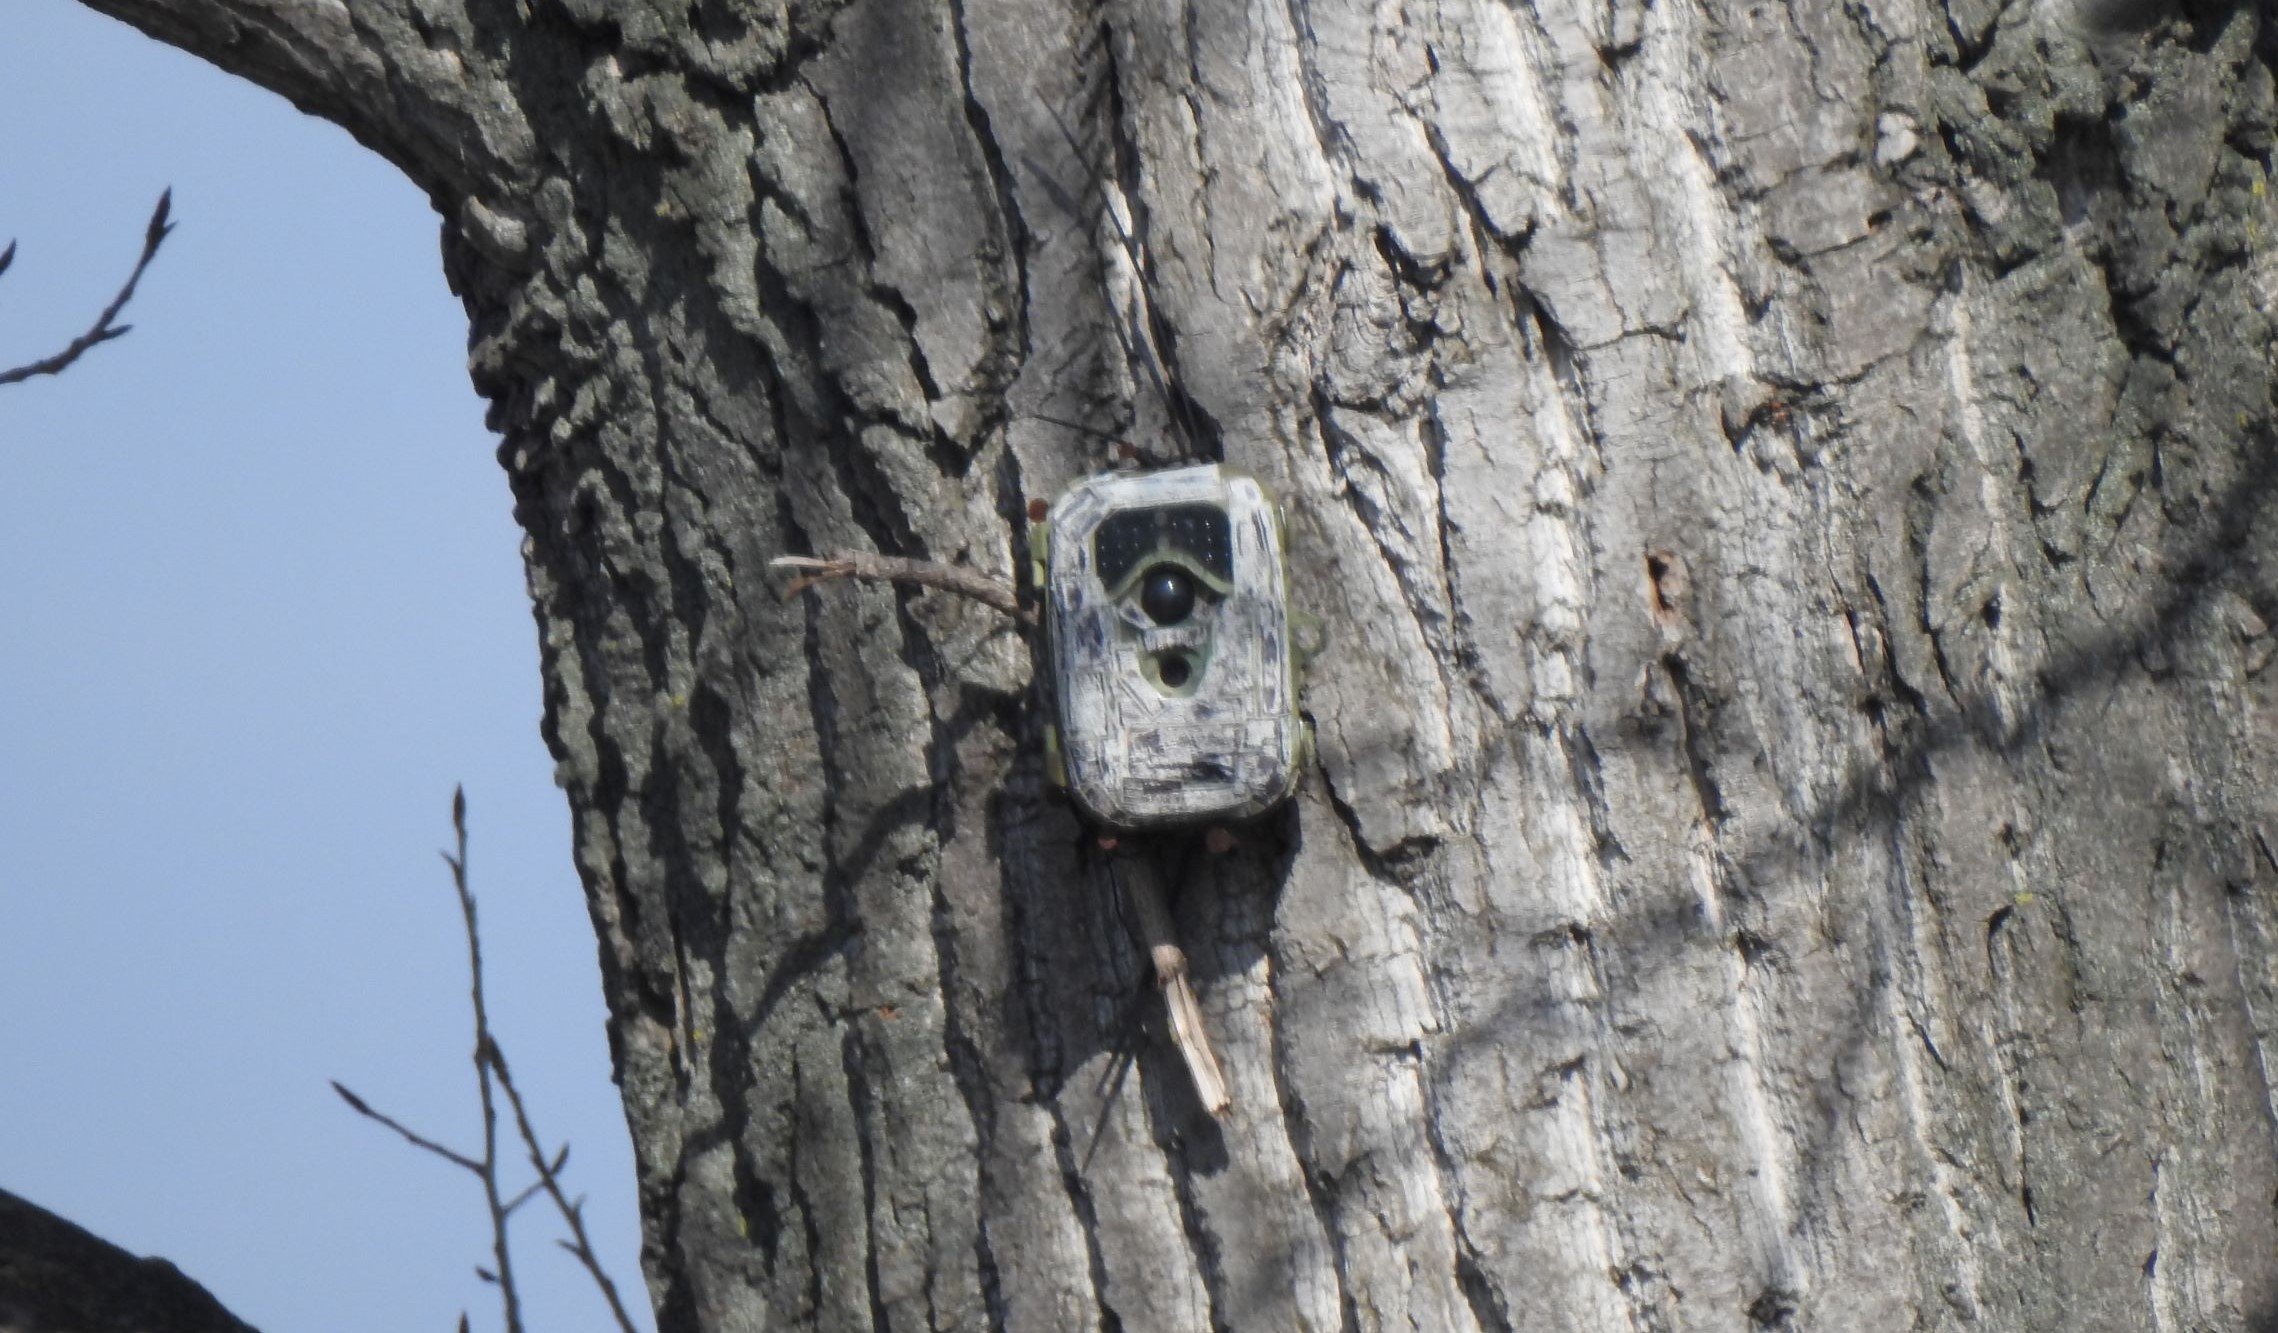 Illustration image of the Monitoring project actions - photo trap installed on the tree to monitor the birds nearby